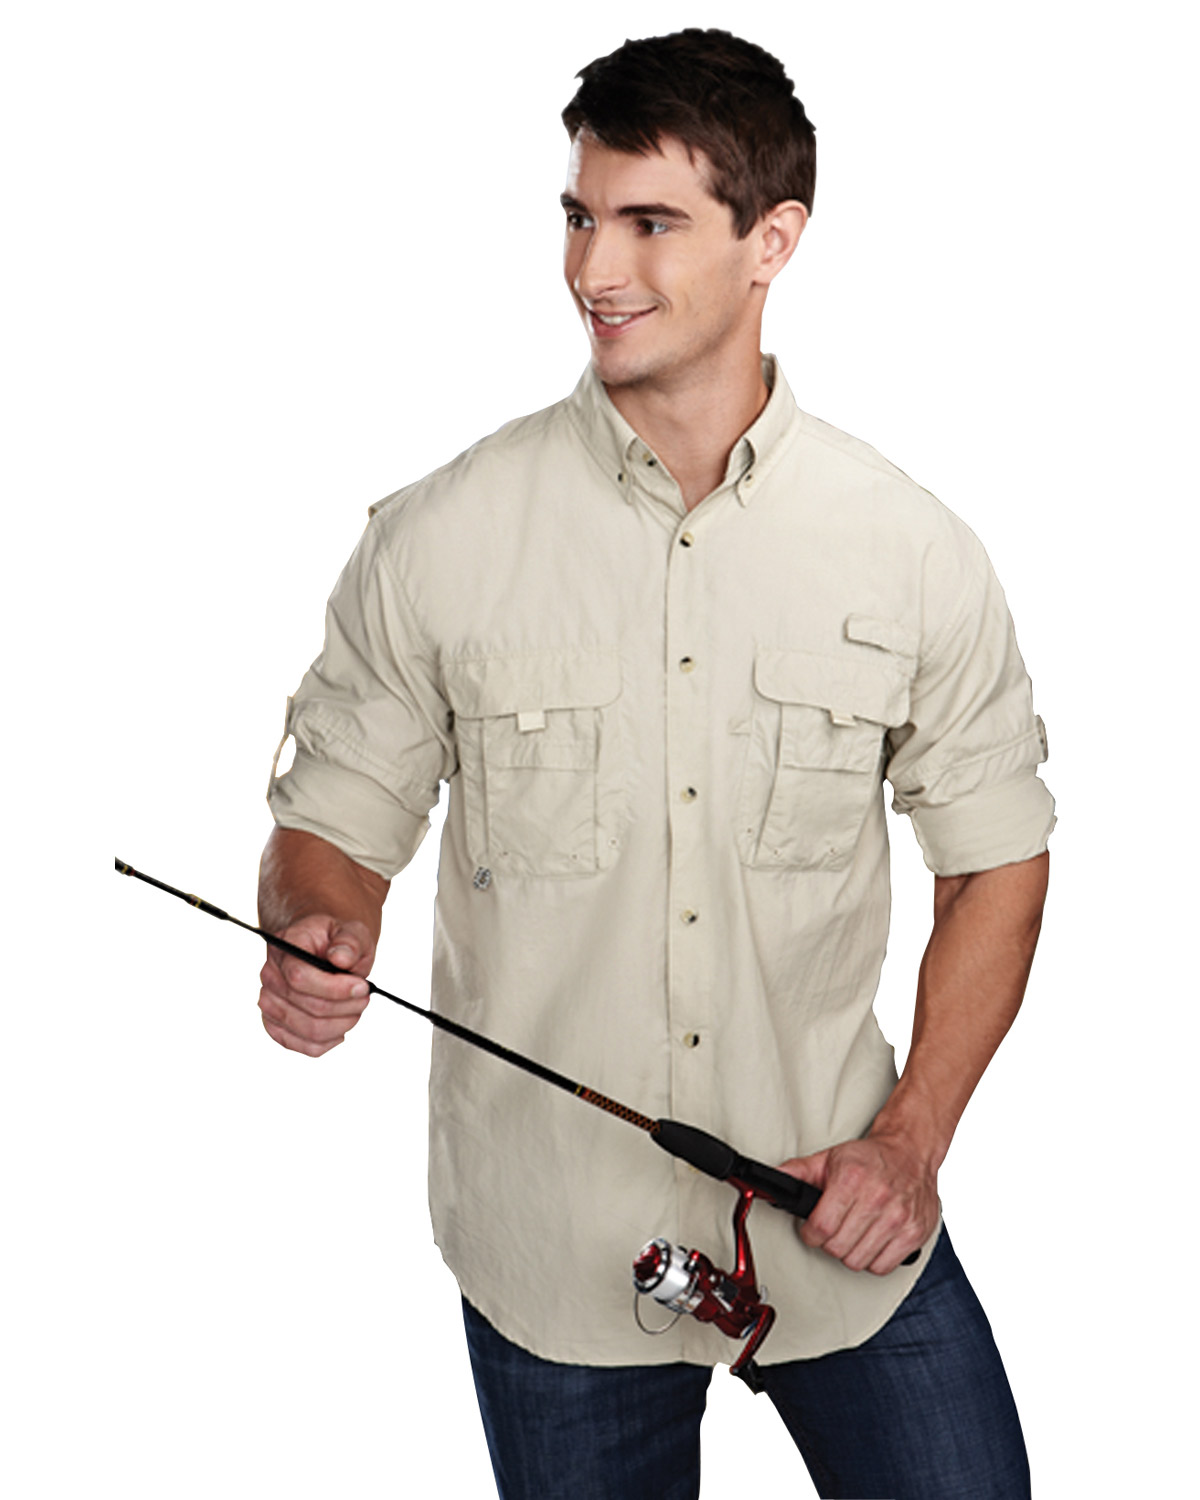 TRI-MOUNTAIN PERFORMANCE 705 Men Marlin Nylon Long Sleeve Shirt With UPF Protection And Ventilated Back at GotApparel